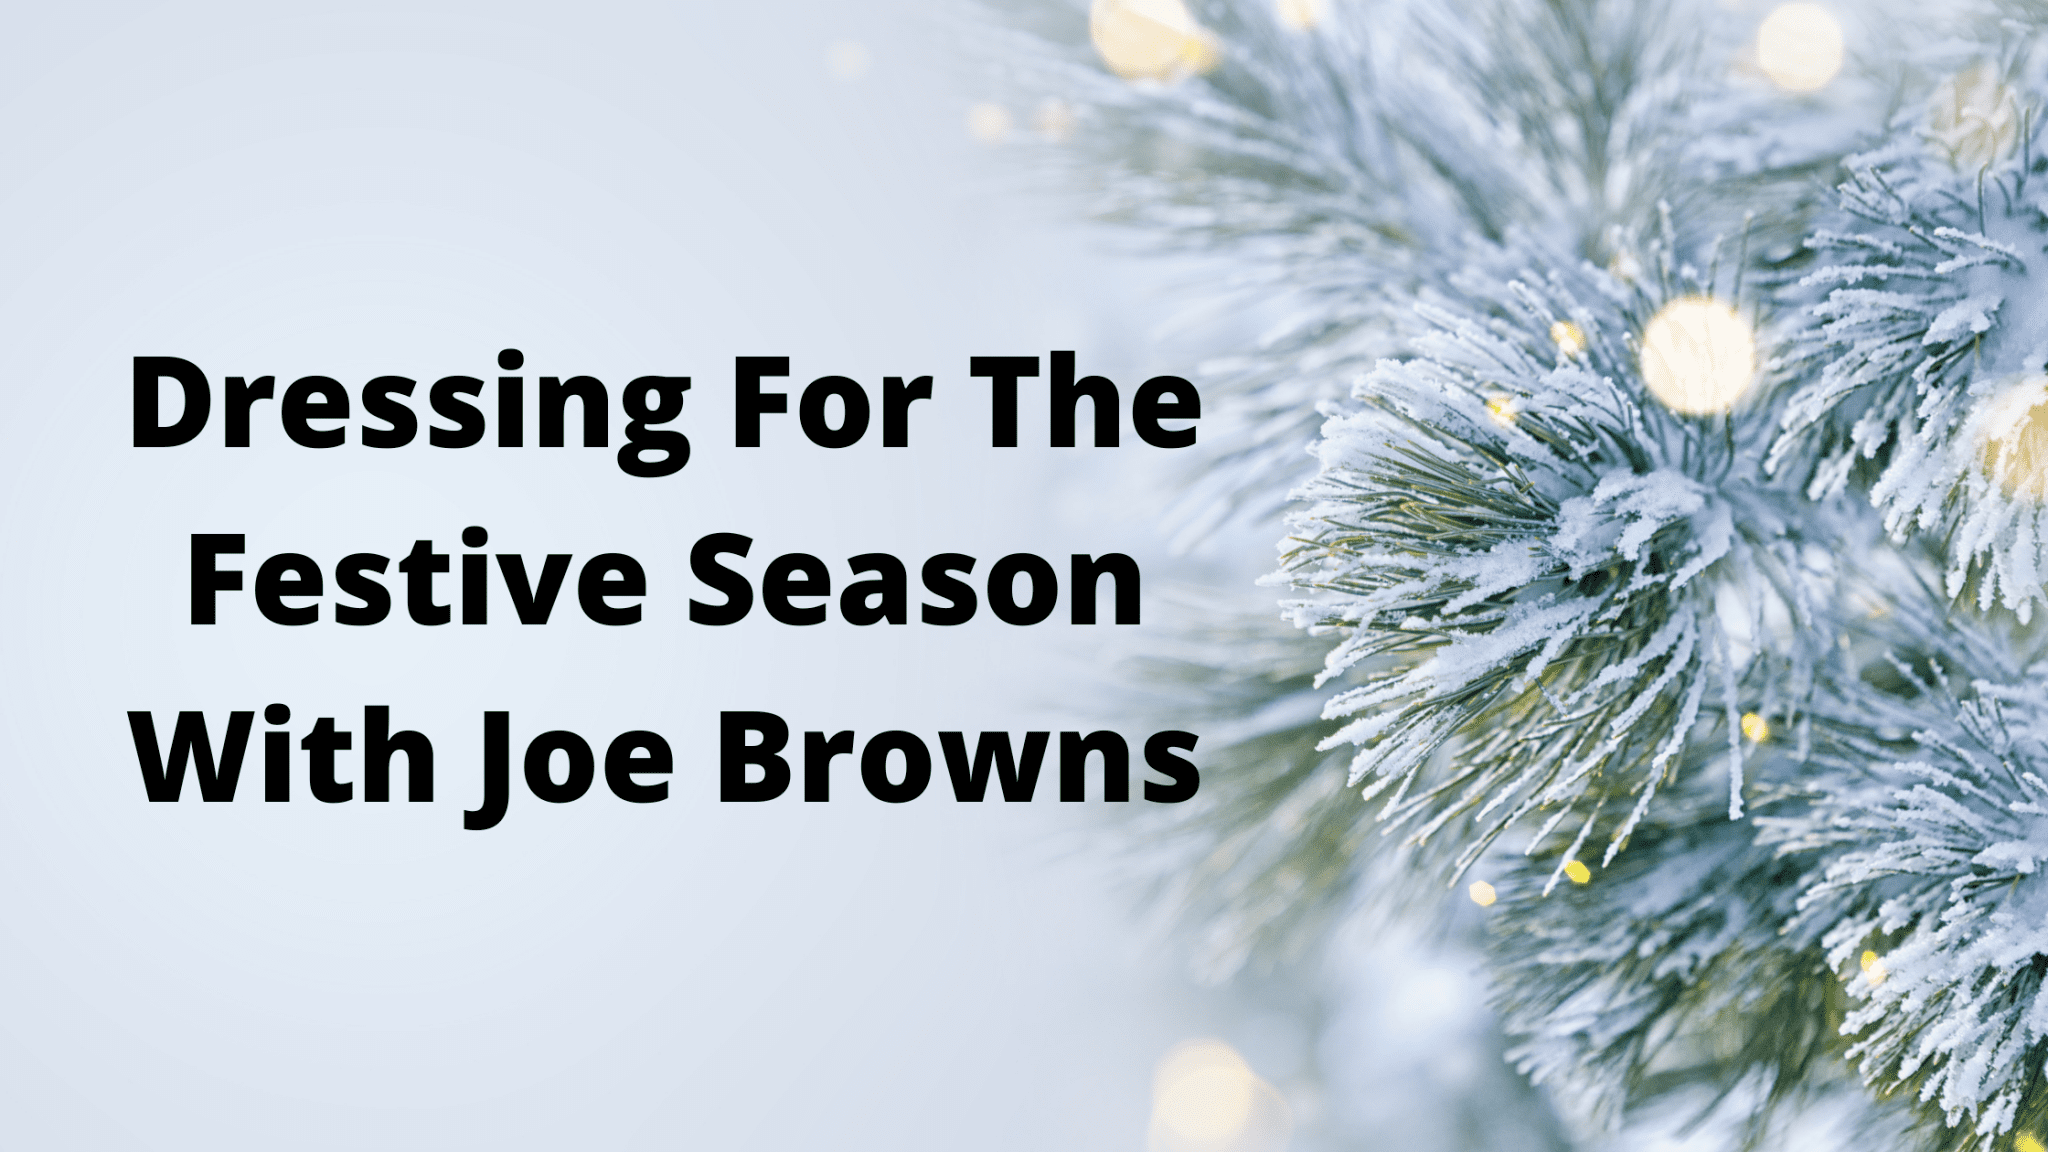 Dressing For The Festive Season With Joe Browns